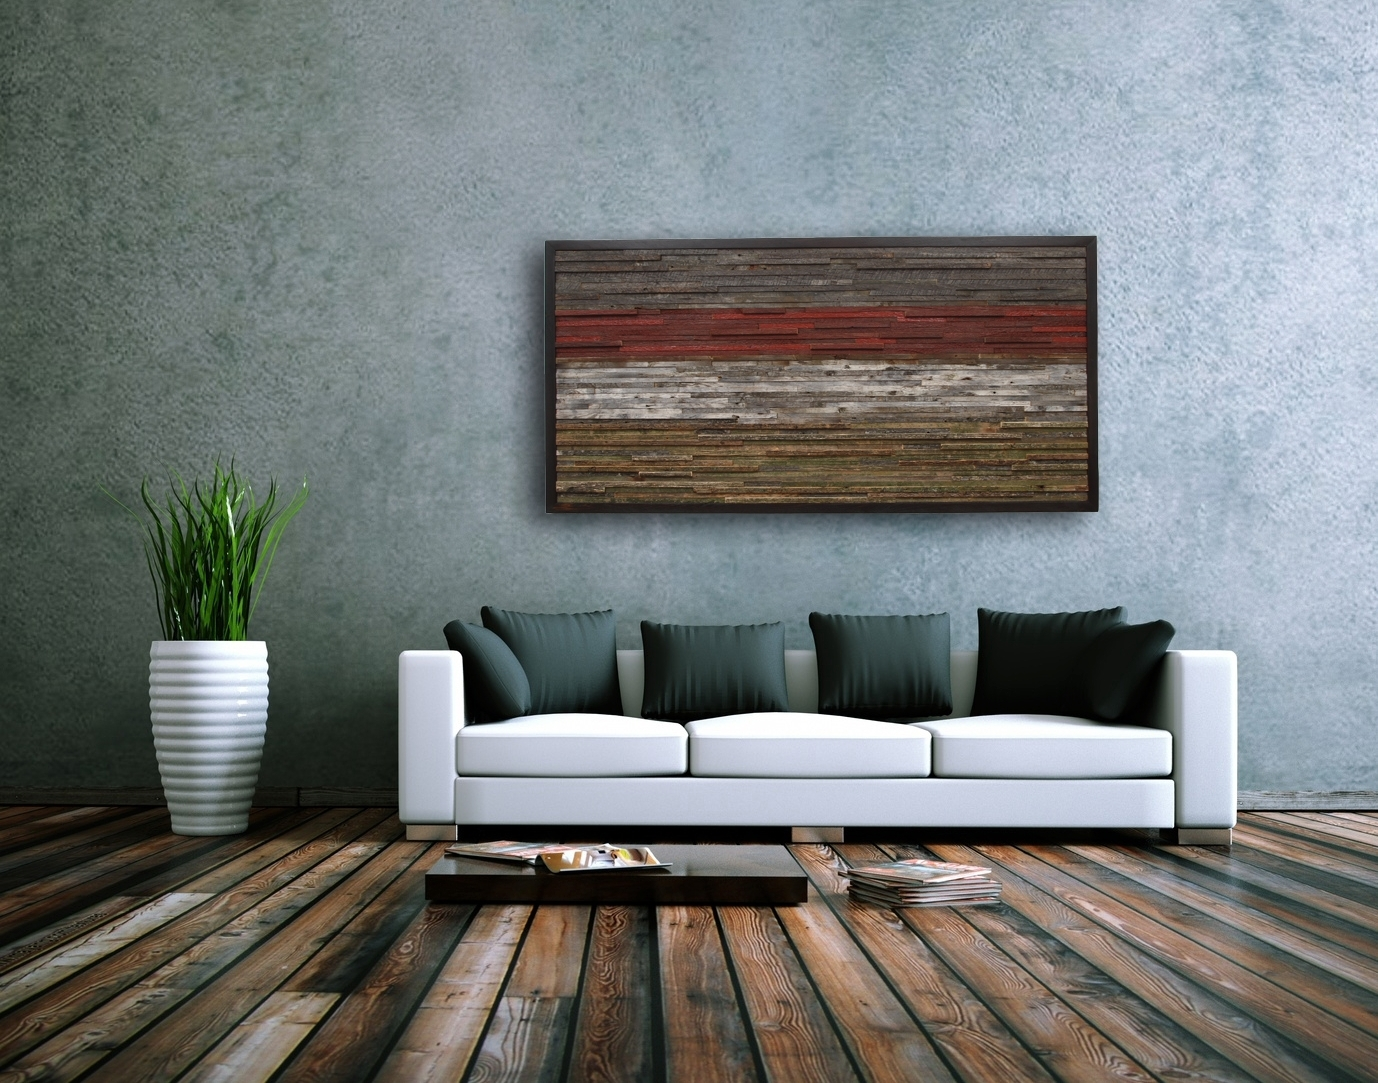 10 ways to add Rustic to your home - Made by CustomMade